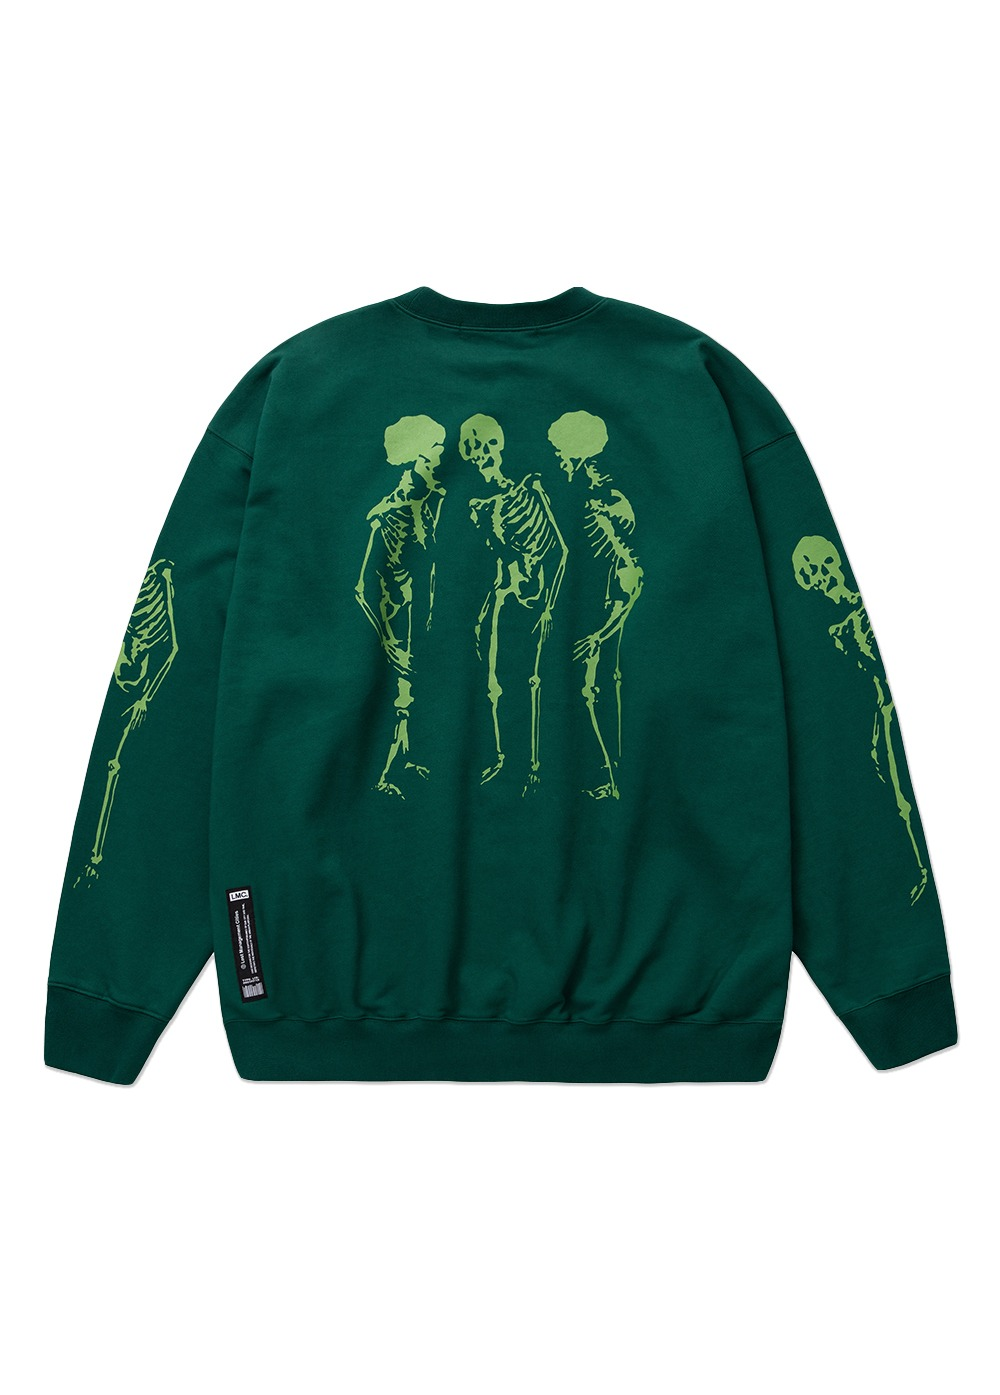 LMC BIOHAZARD OVERSIZED SWEATSHIRT green